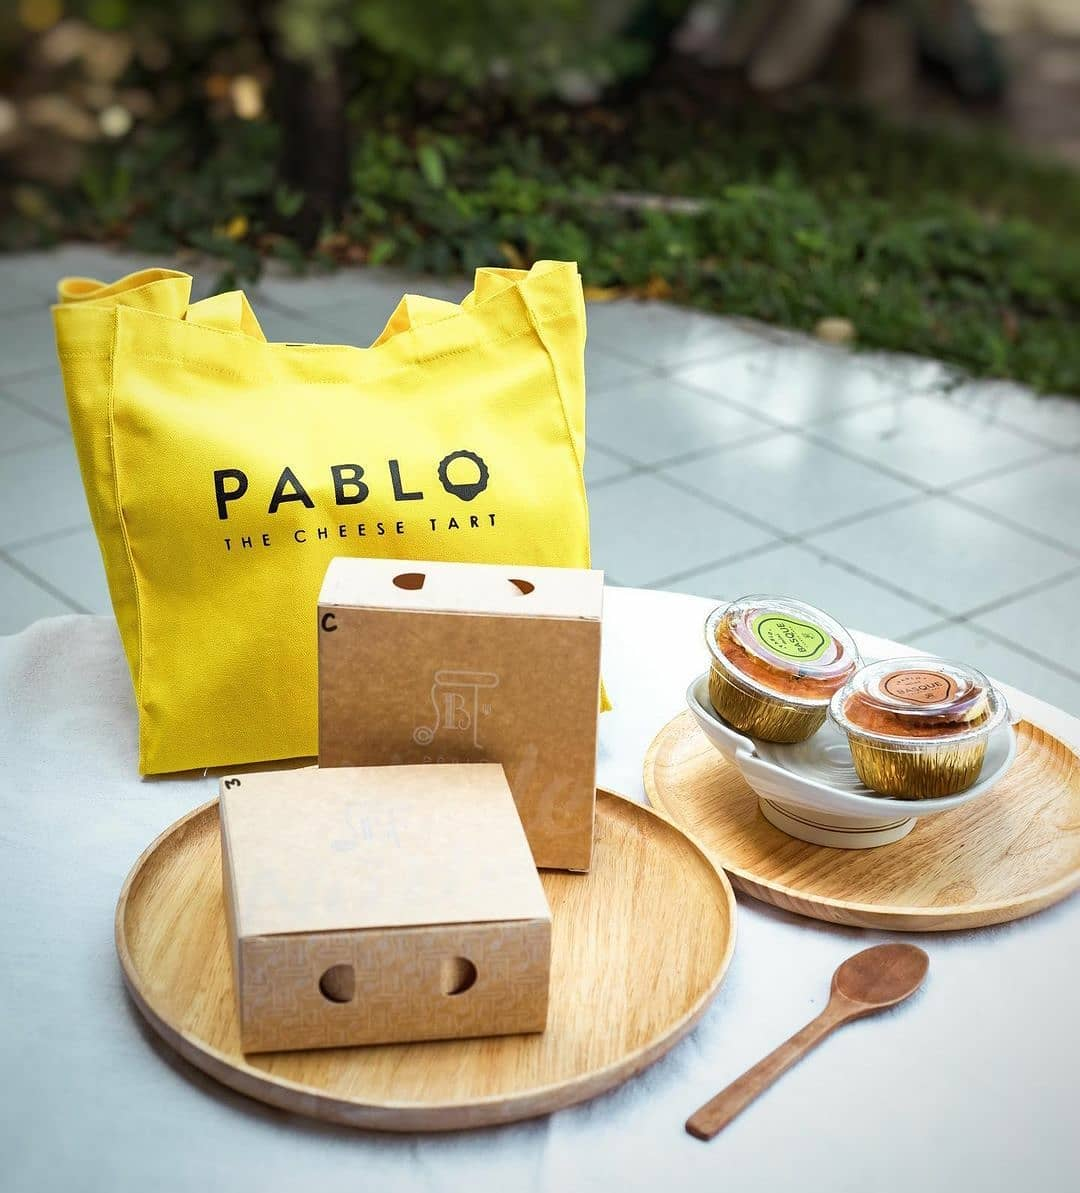 Pablo Cheese Tart Delivery